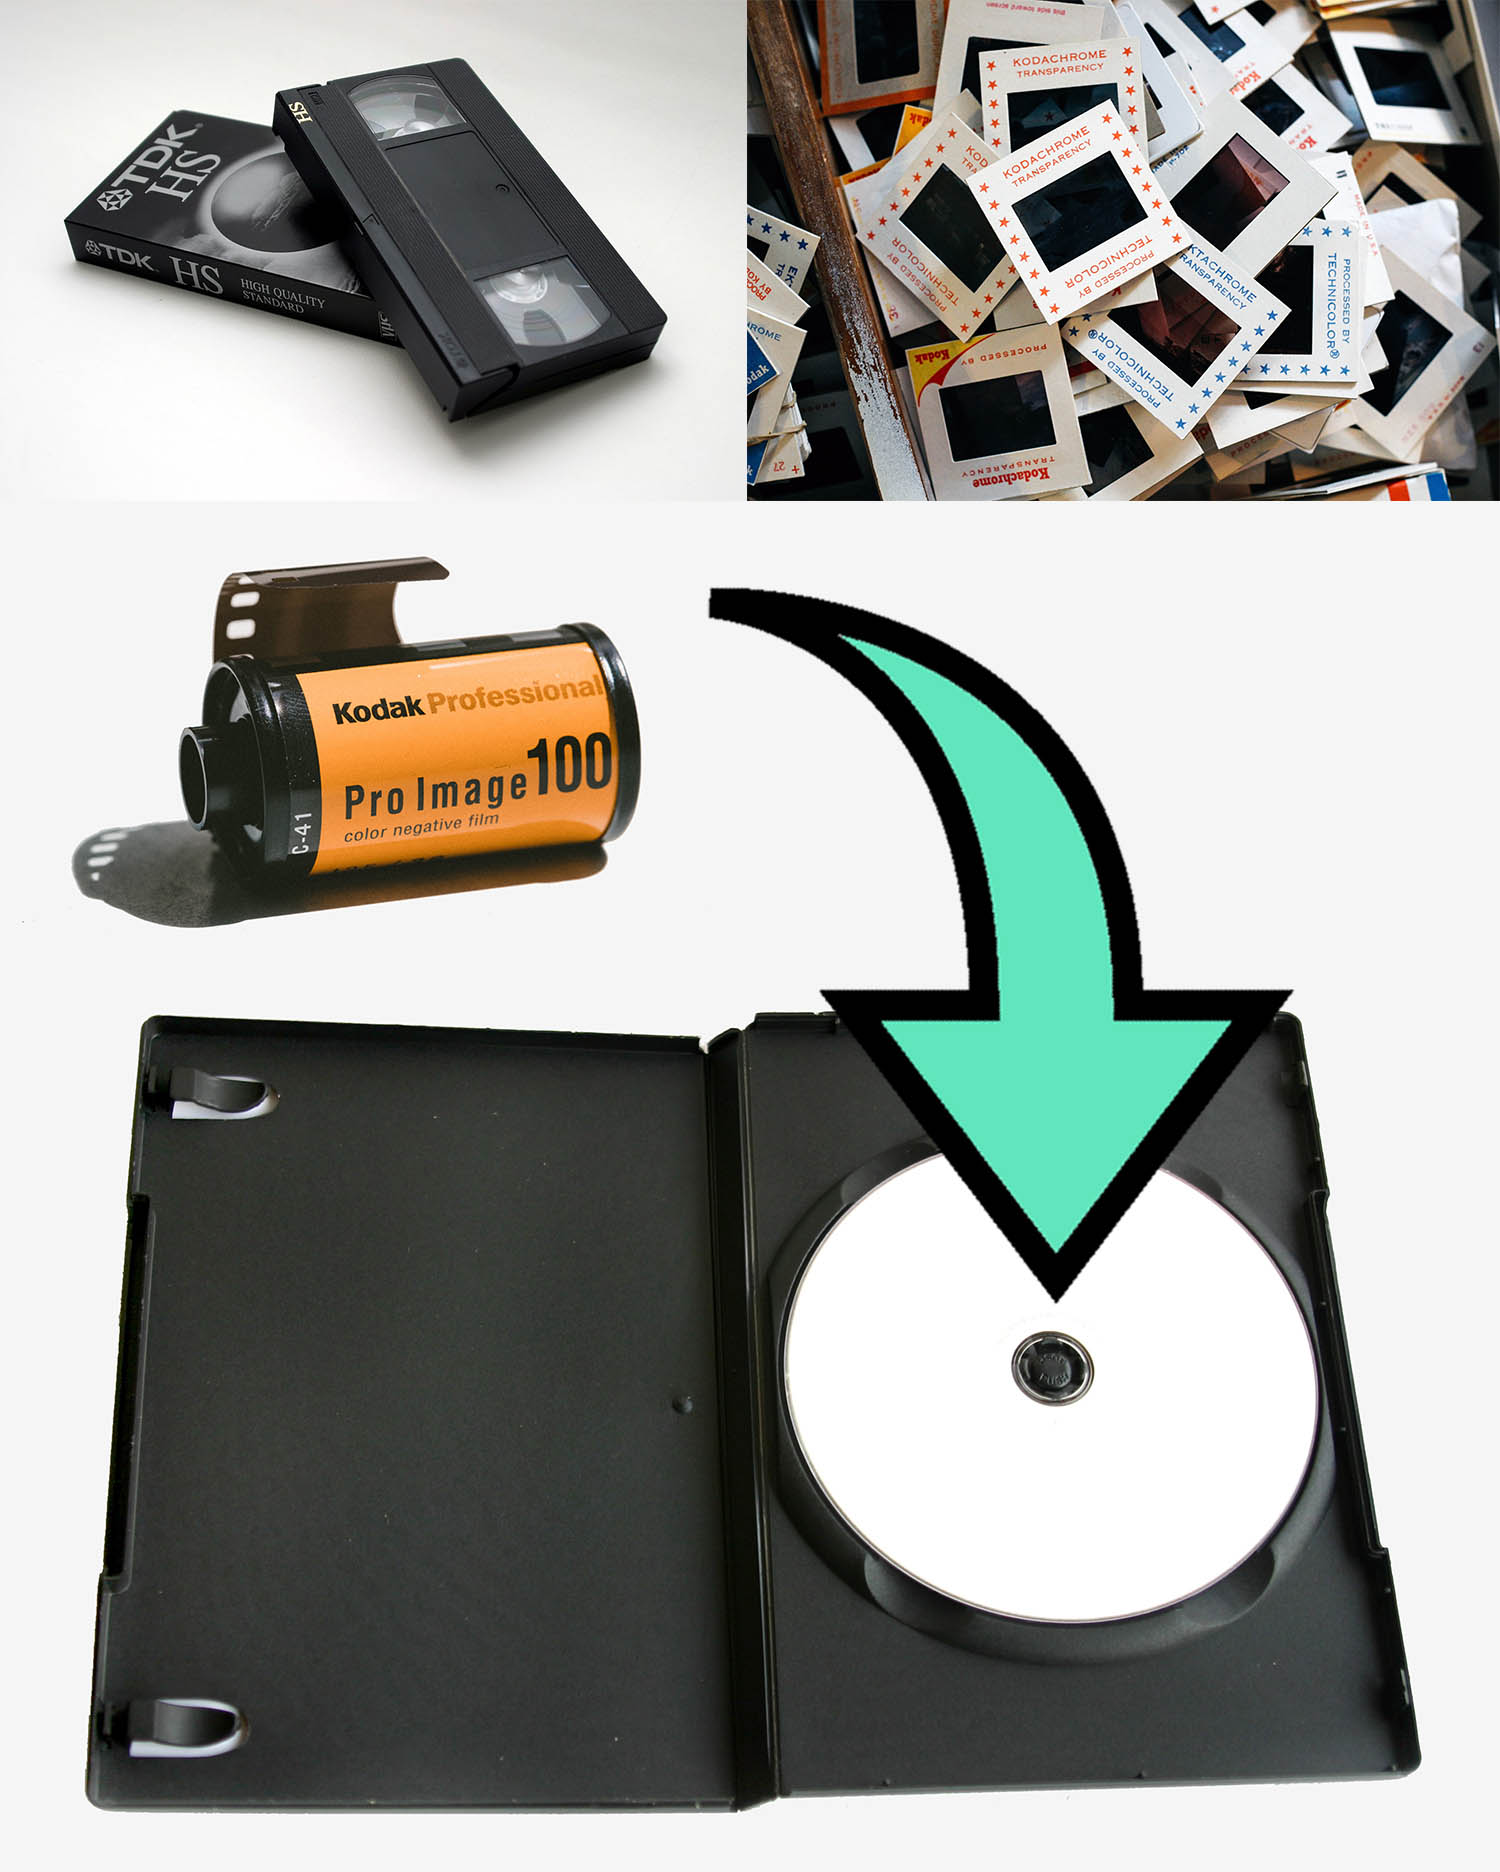 Image of a VHS tape, 35mm slides, a film and a DVD